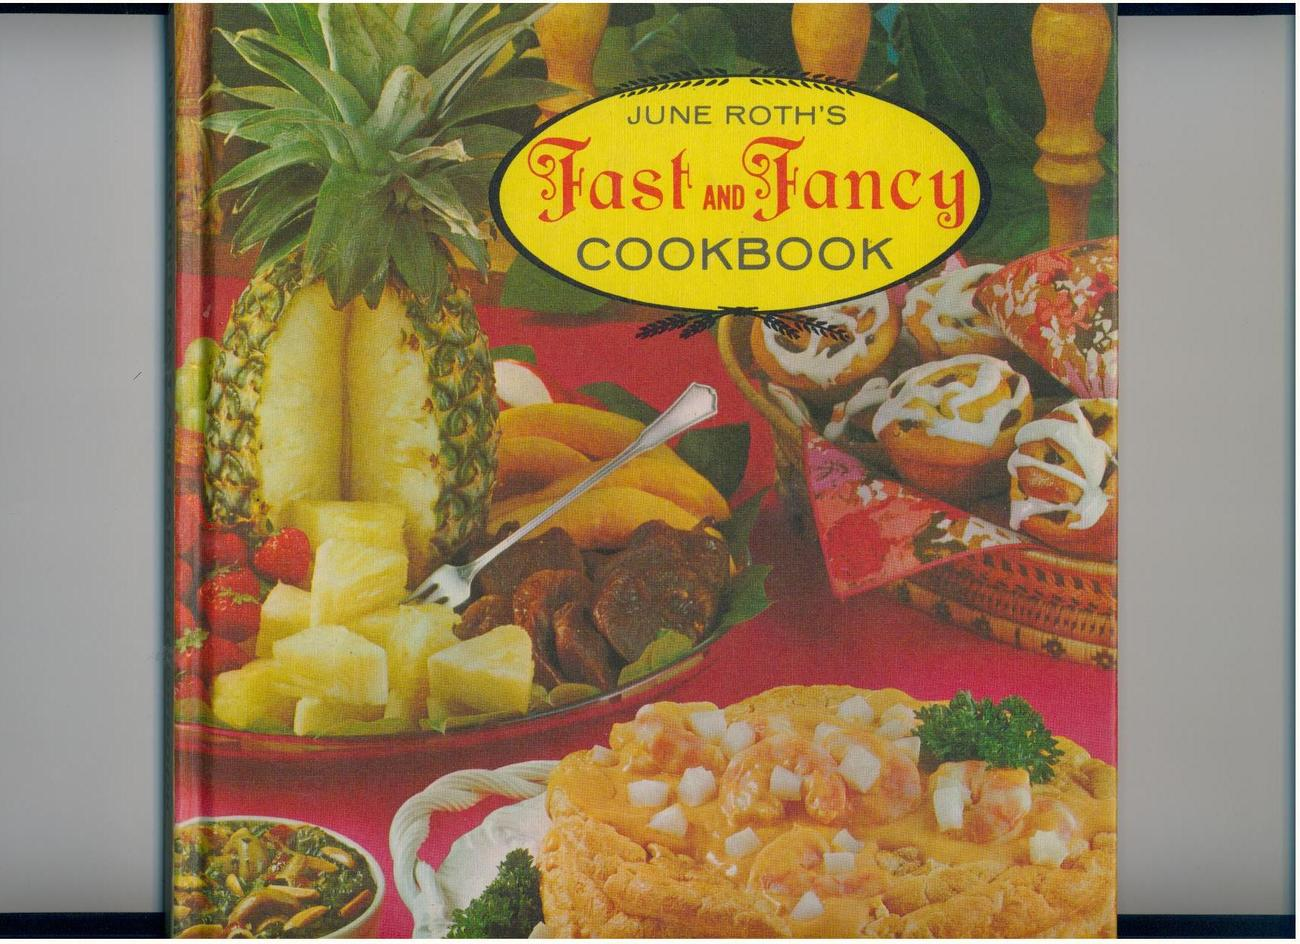 FAST AND FANCY COOKBOOK - 1969 hb